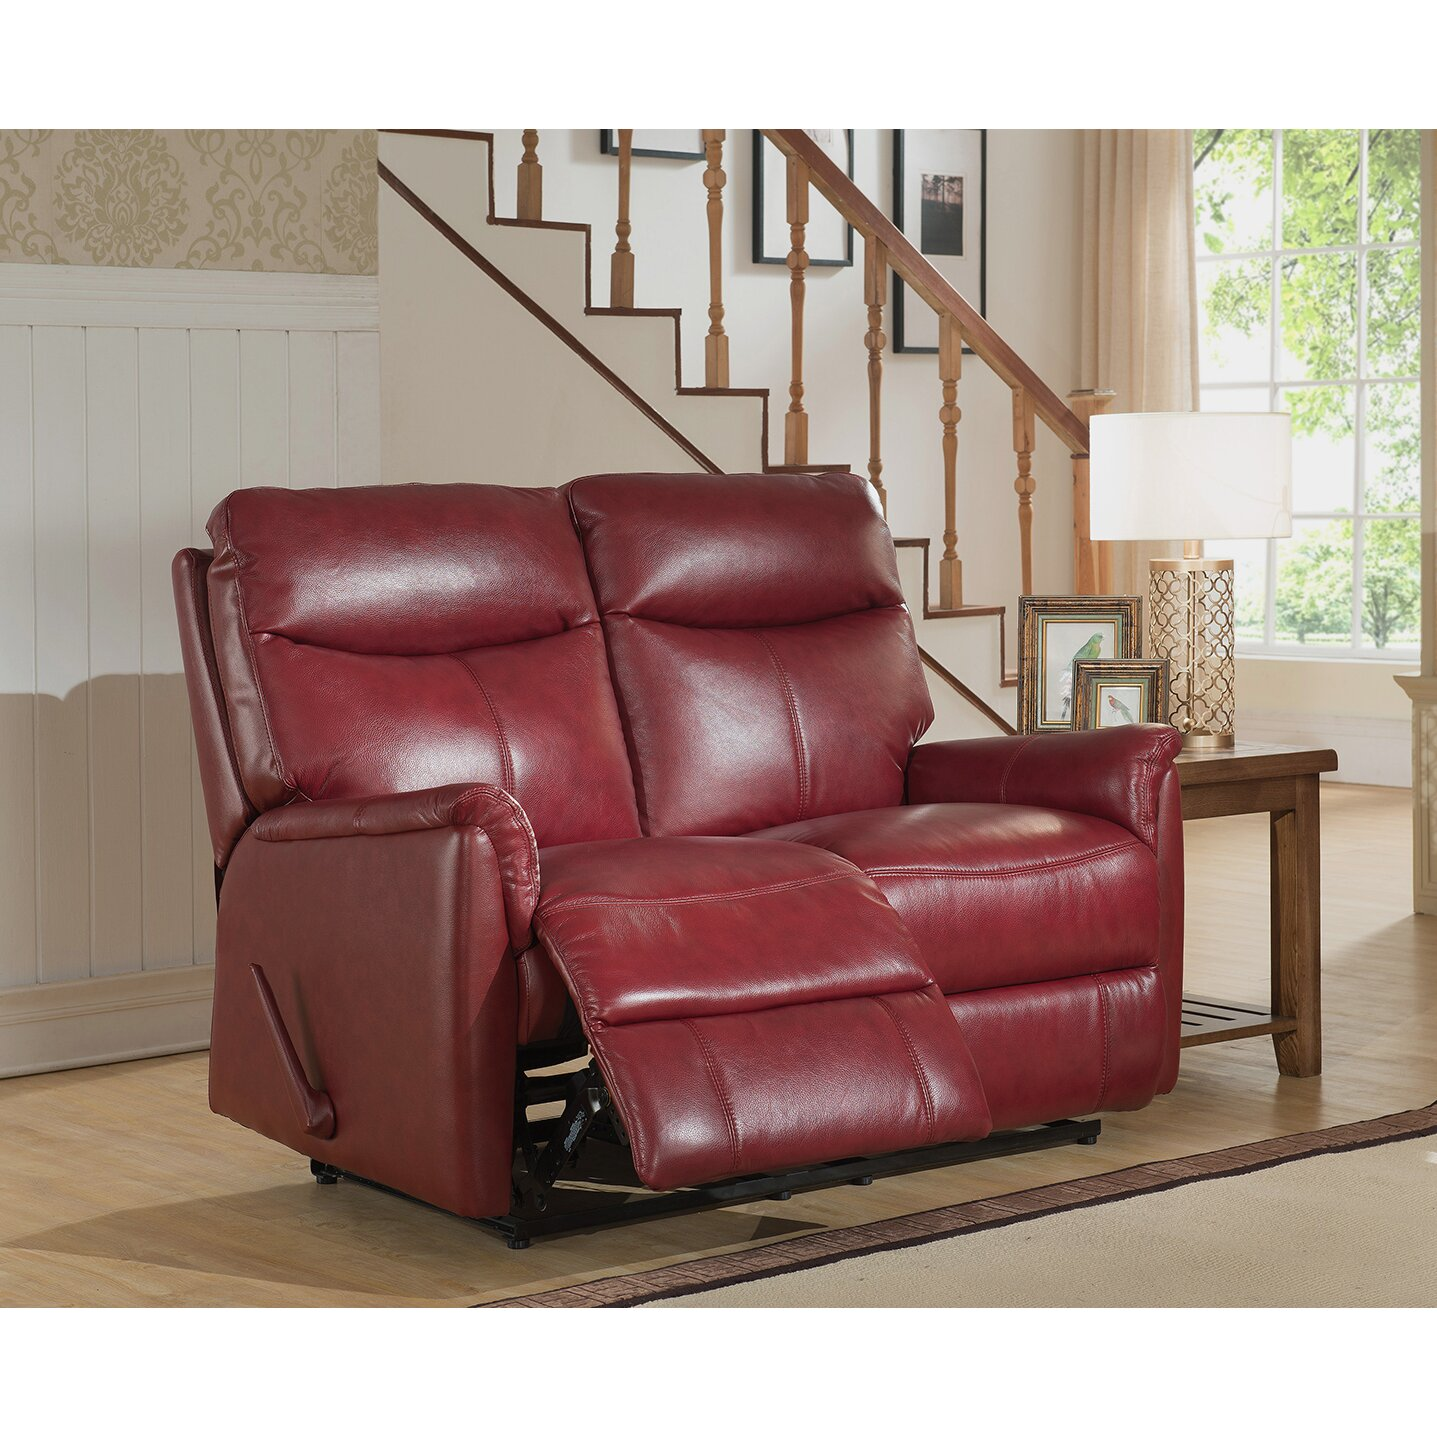 Amax napa top grain leather lay flat reclining sofa and for Divan and settee